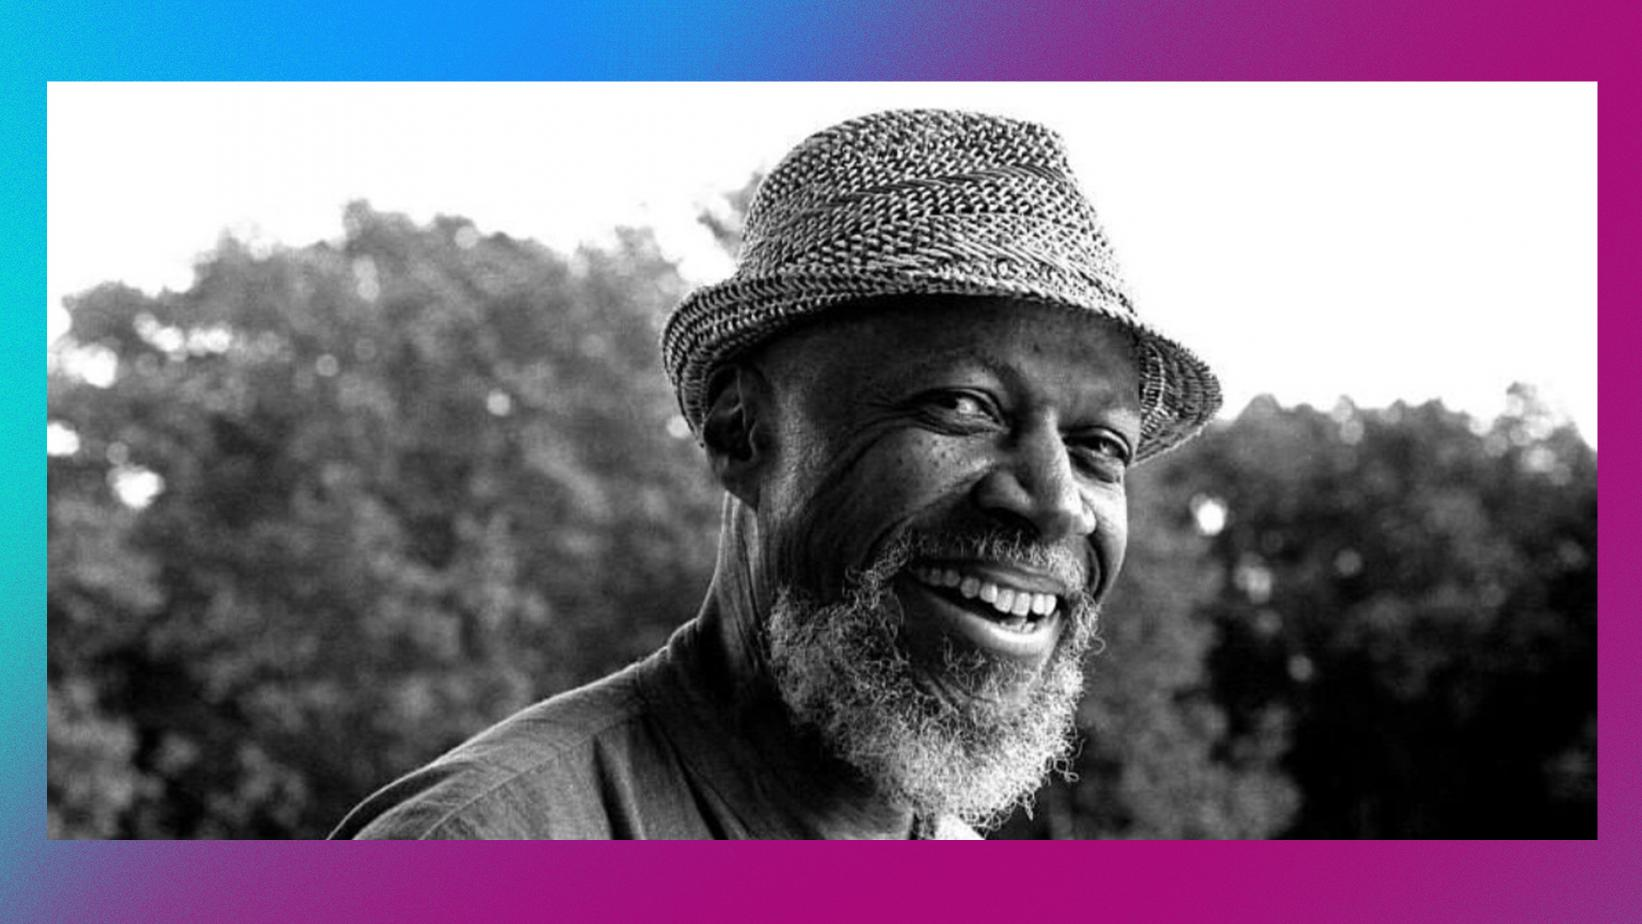 black and white photo of Laraaji smiling with a straw hat